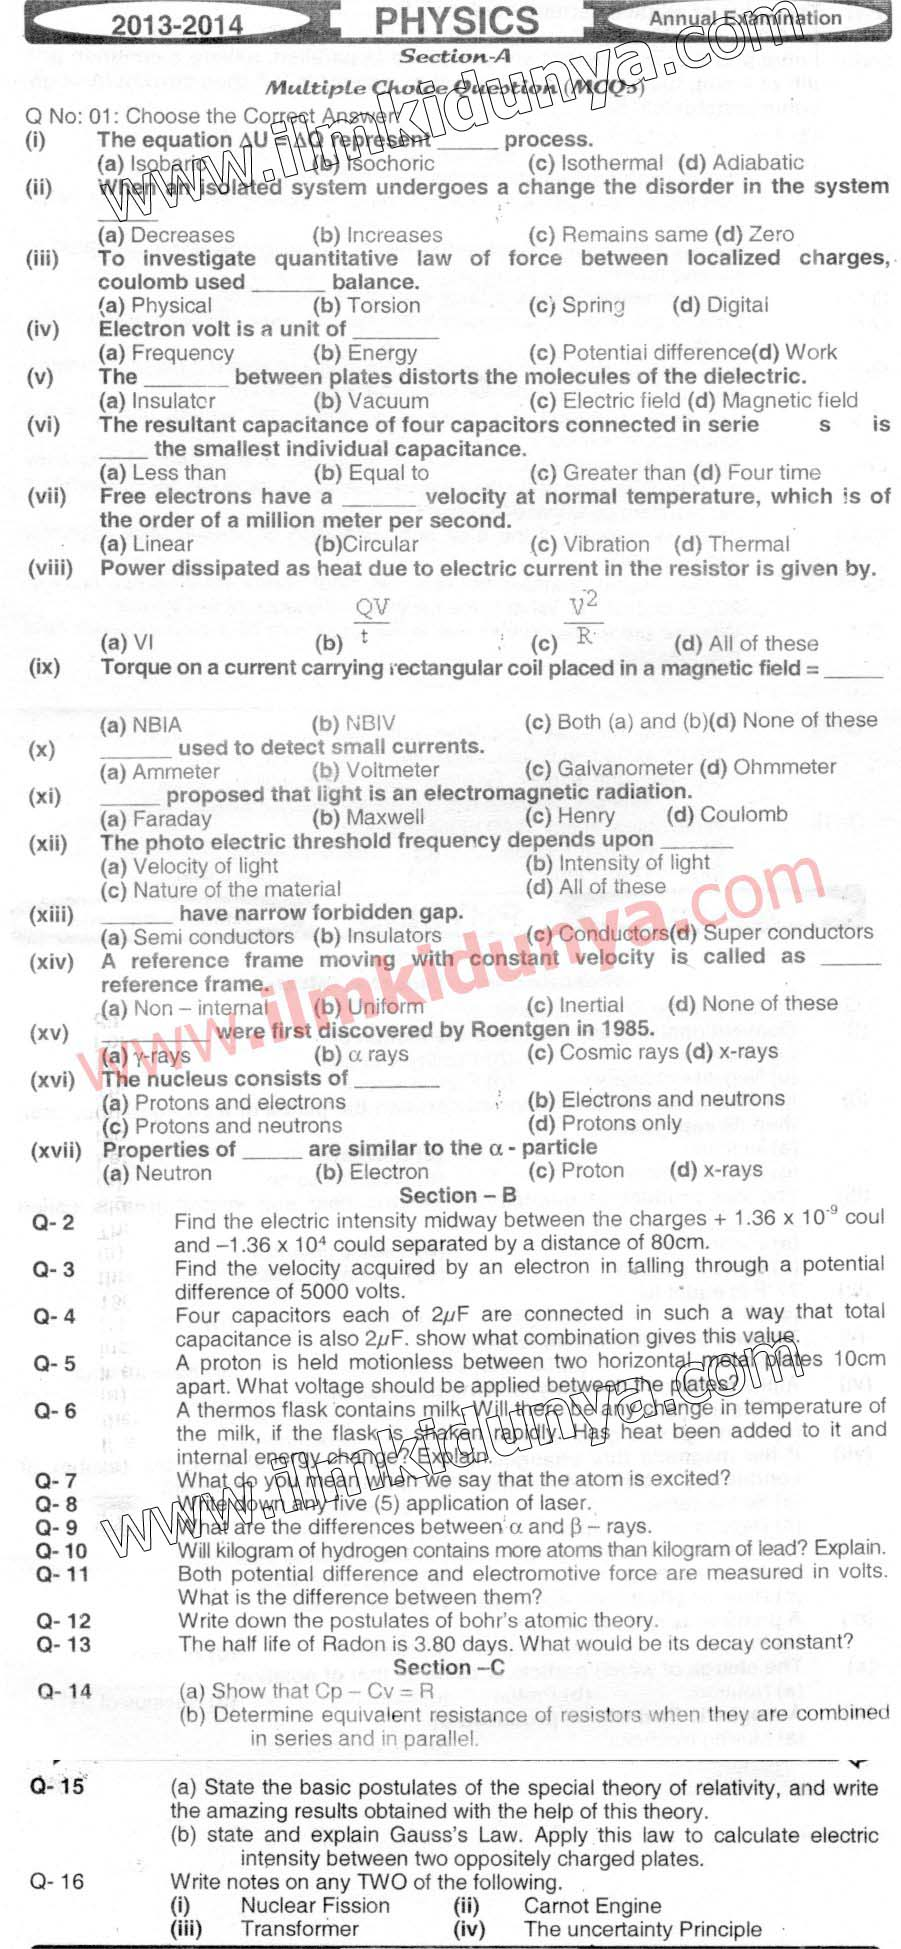 Past Papers 2014 Hyderabad Board Inter Part 2 Physics